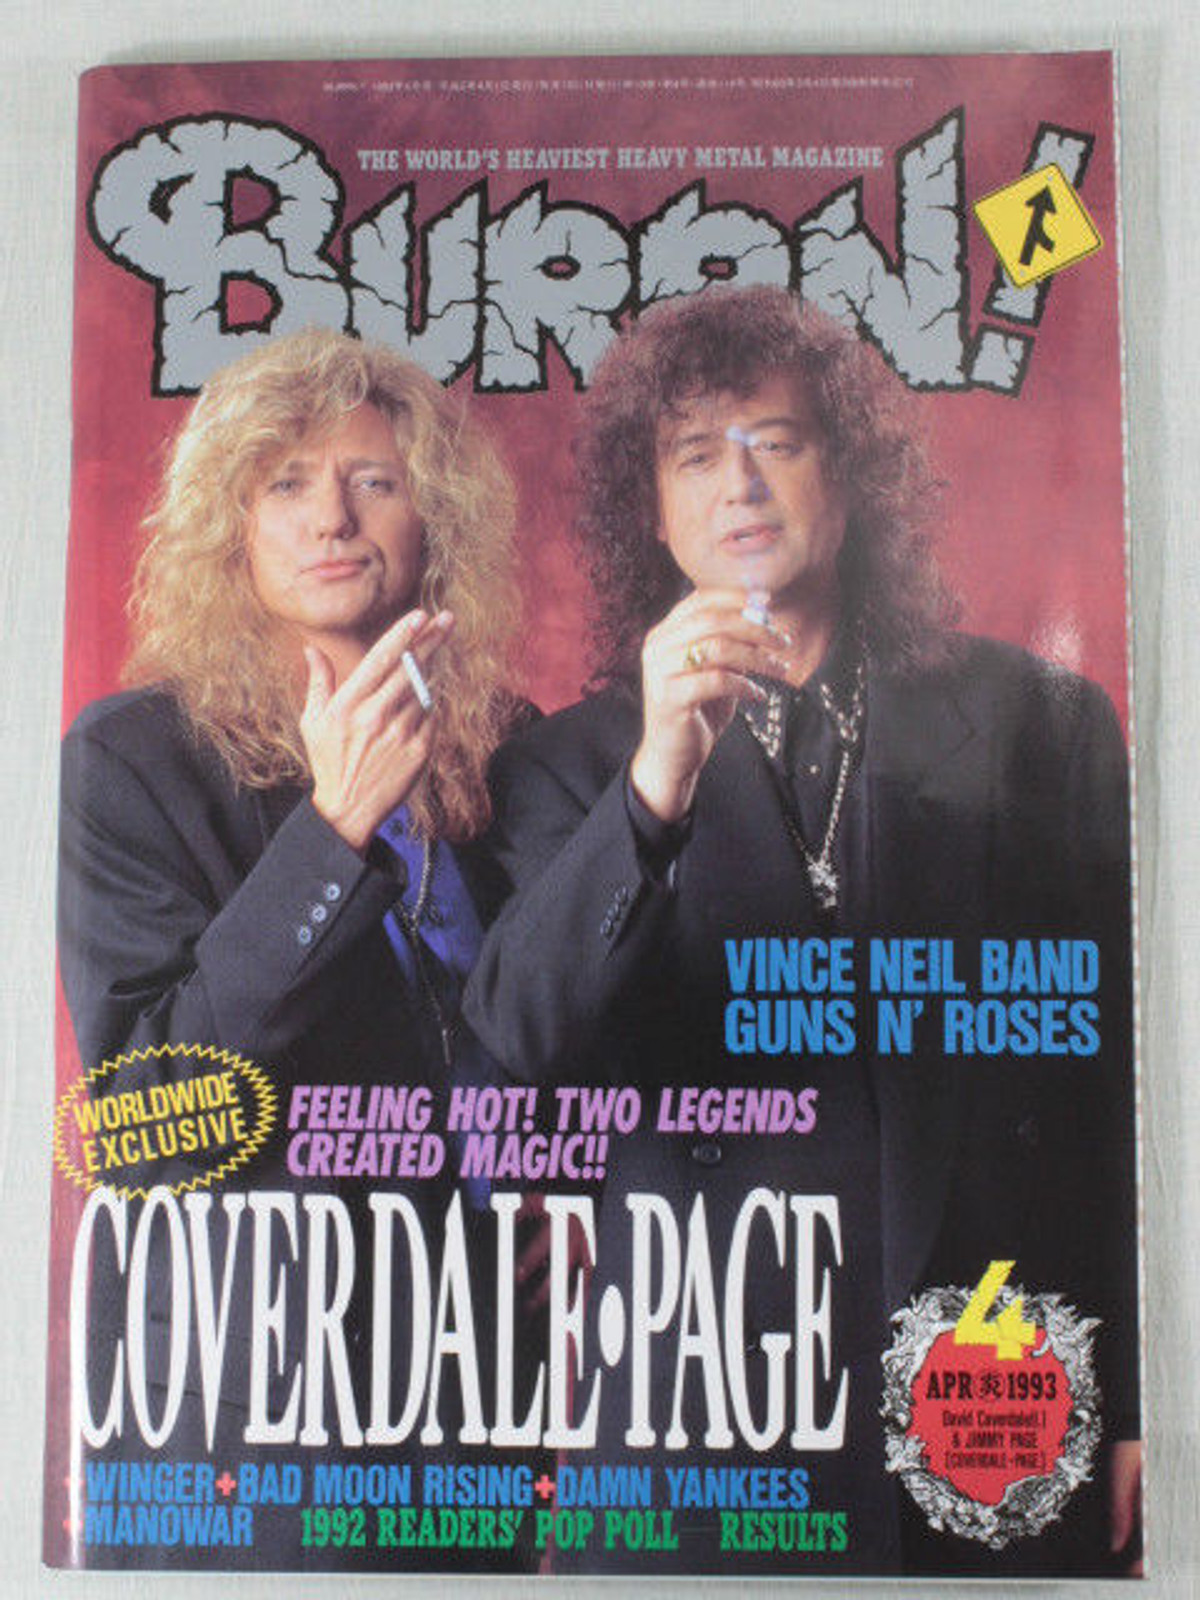 1993/04 BURRN! Japan Rock Magazine COVERDALE PAGE/VINCE NIEL/GUNS N' ROSES